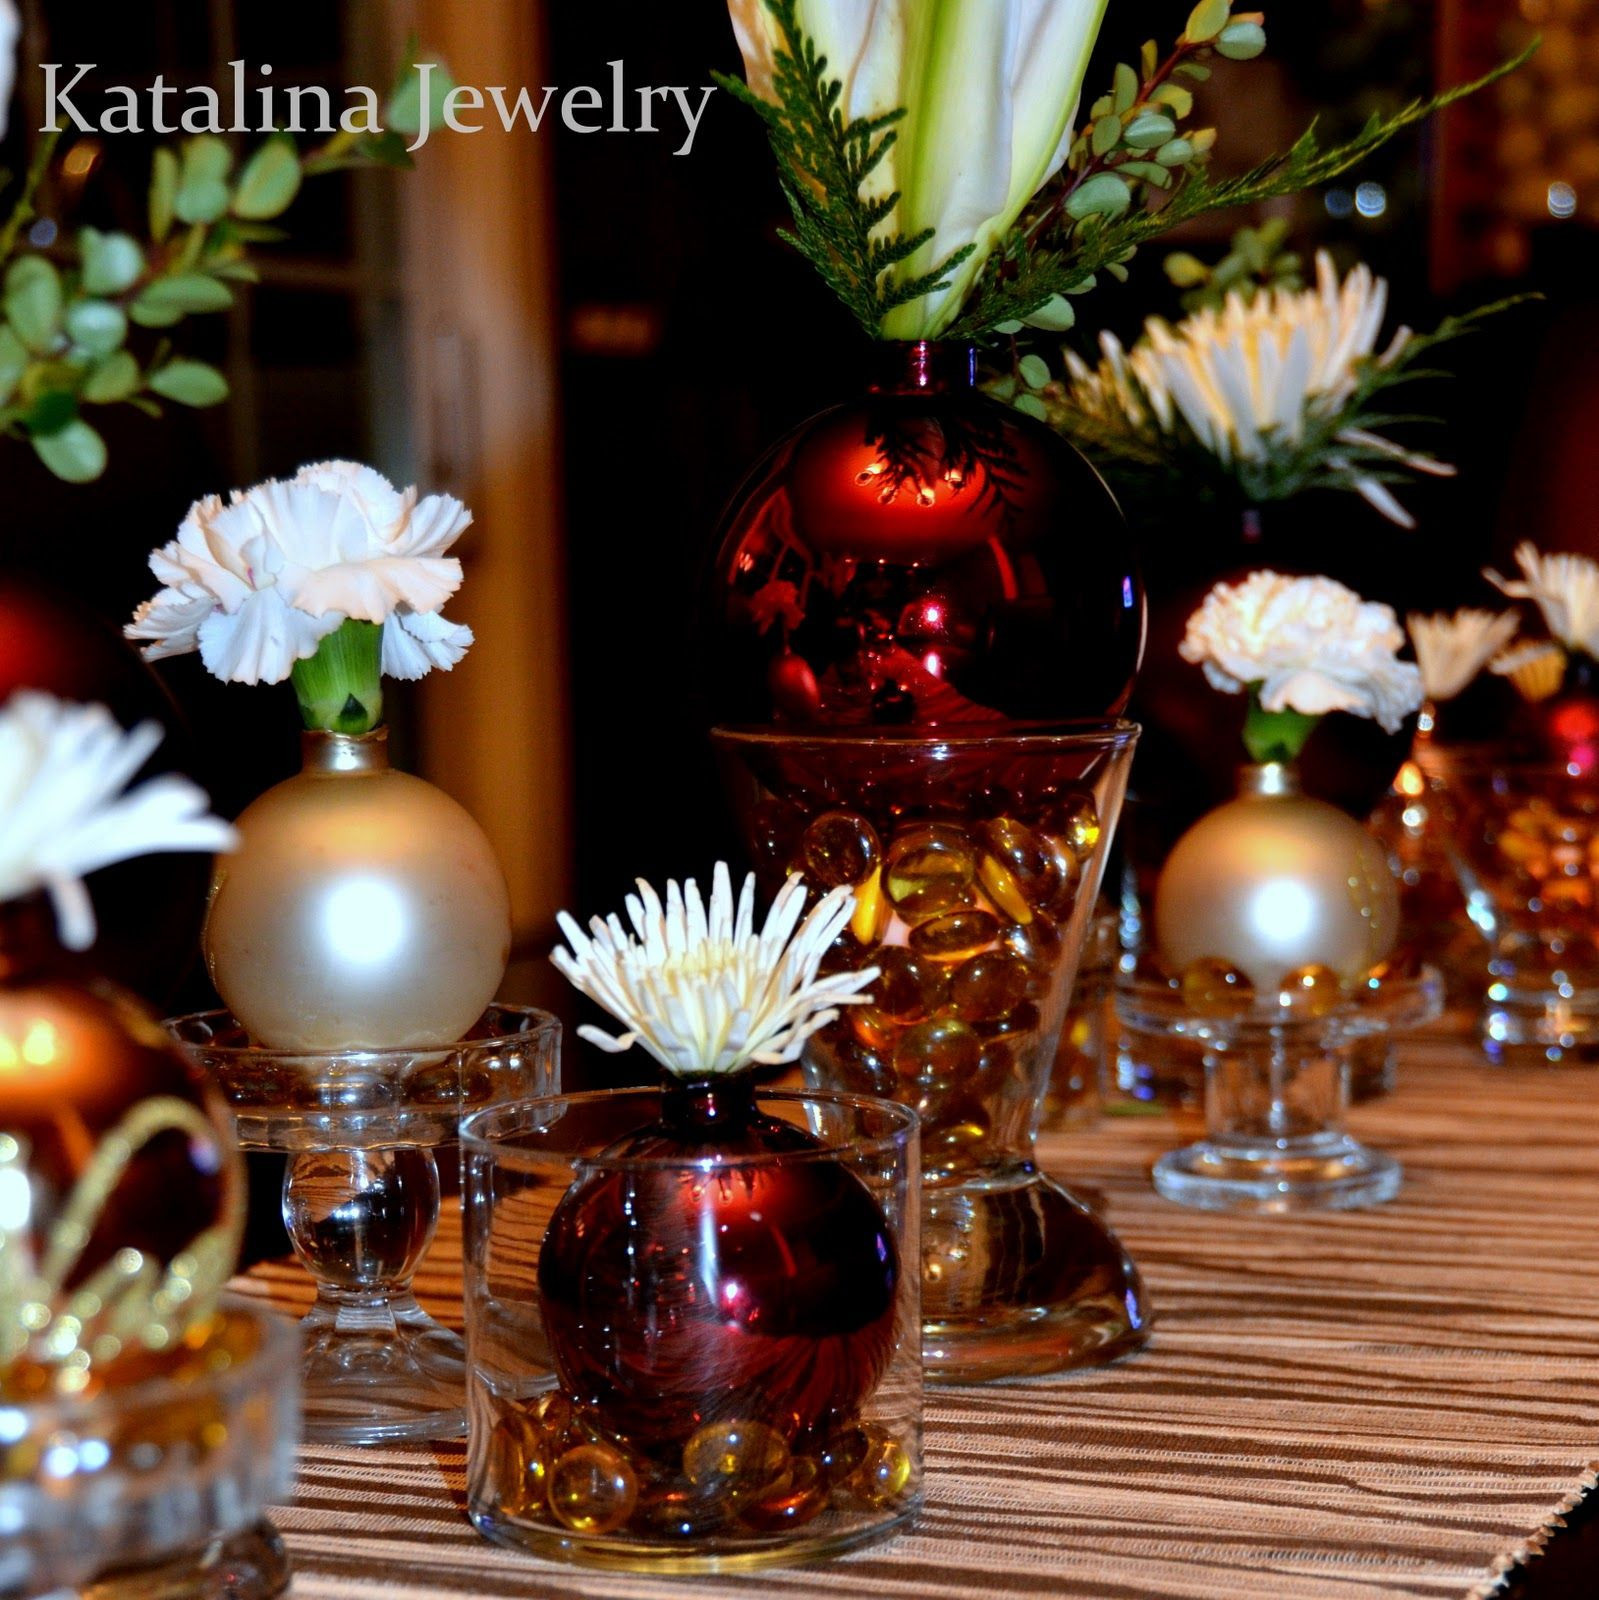 pier 1 red vase of christmas decoration ball good christmas tablescape with diy glass regarding christmas decoration ball good christmas tablescape with diy glass ornament vases fill cheap